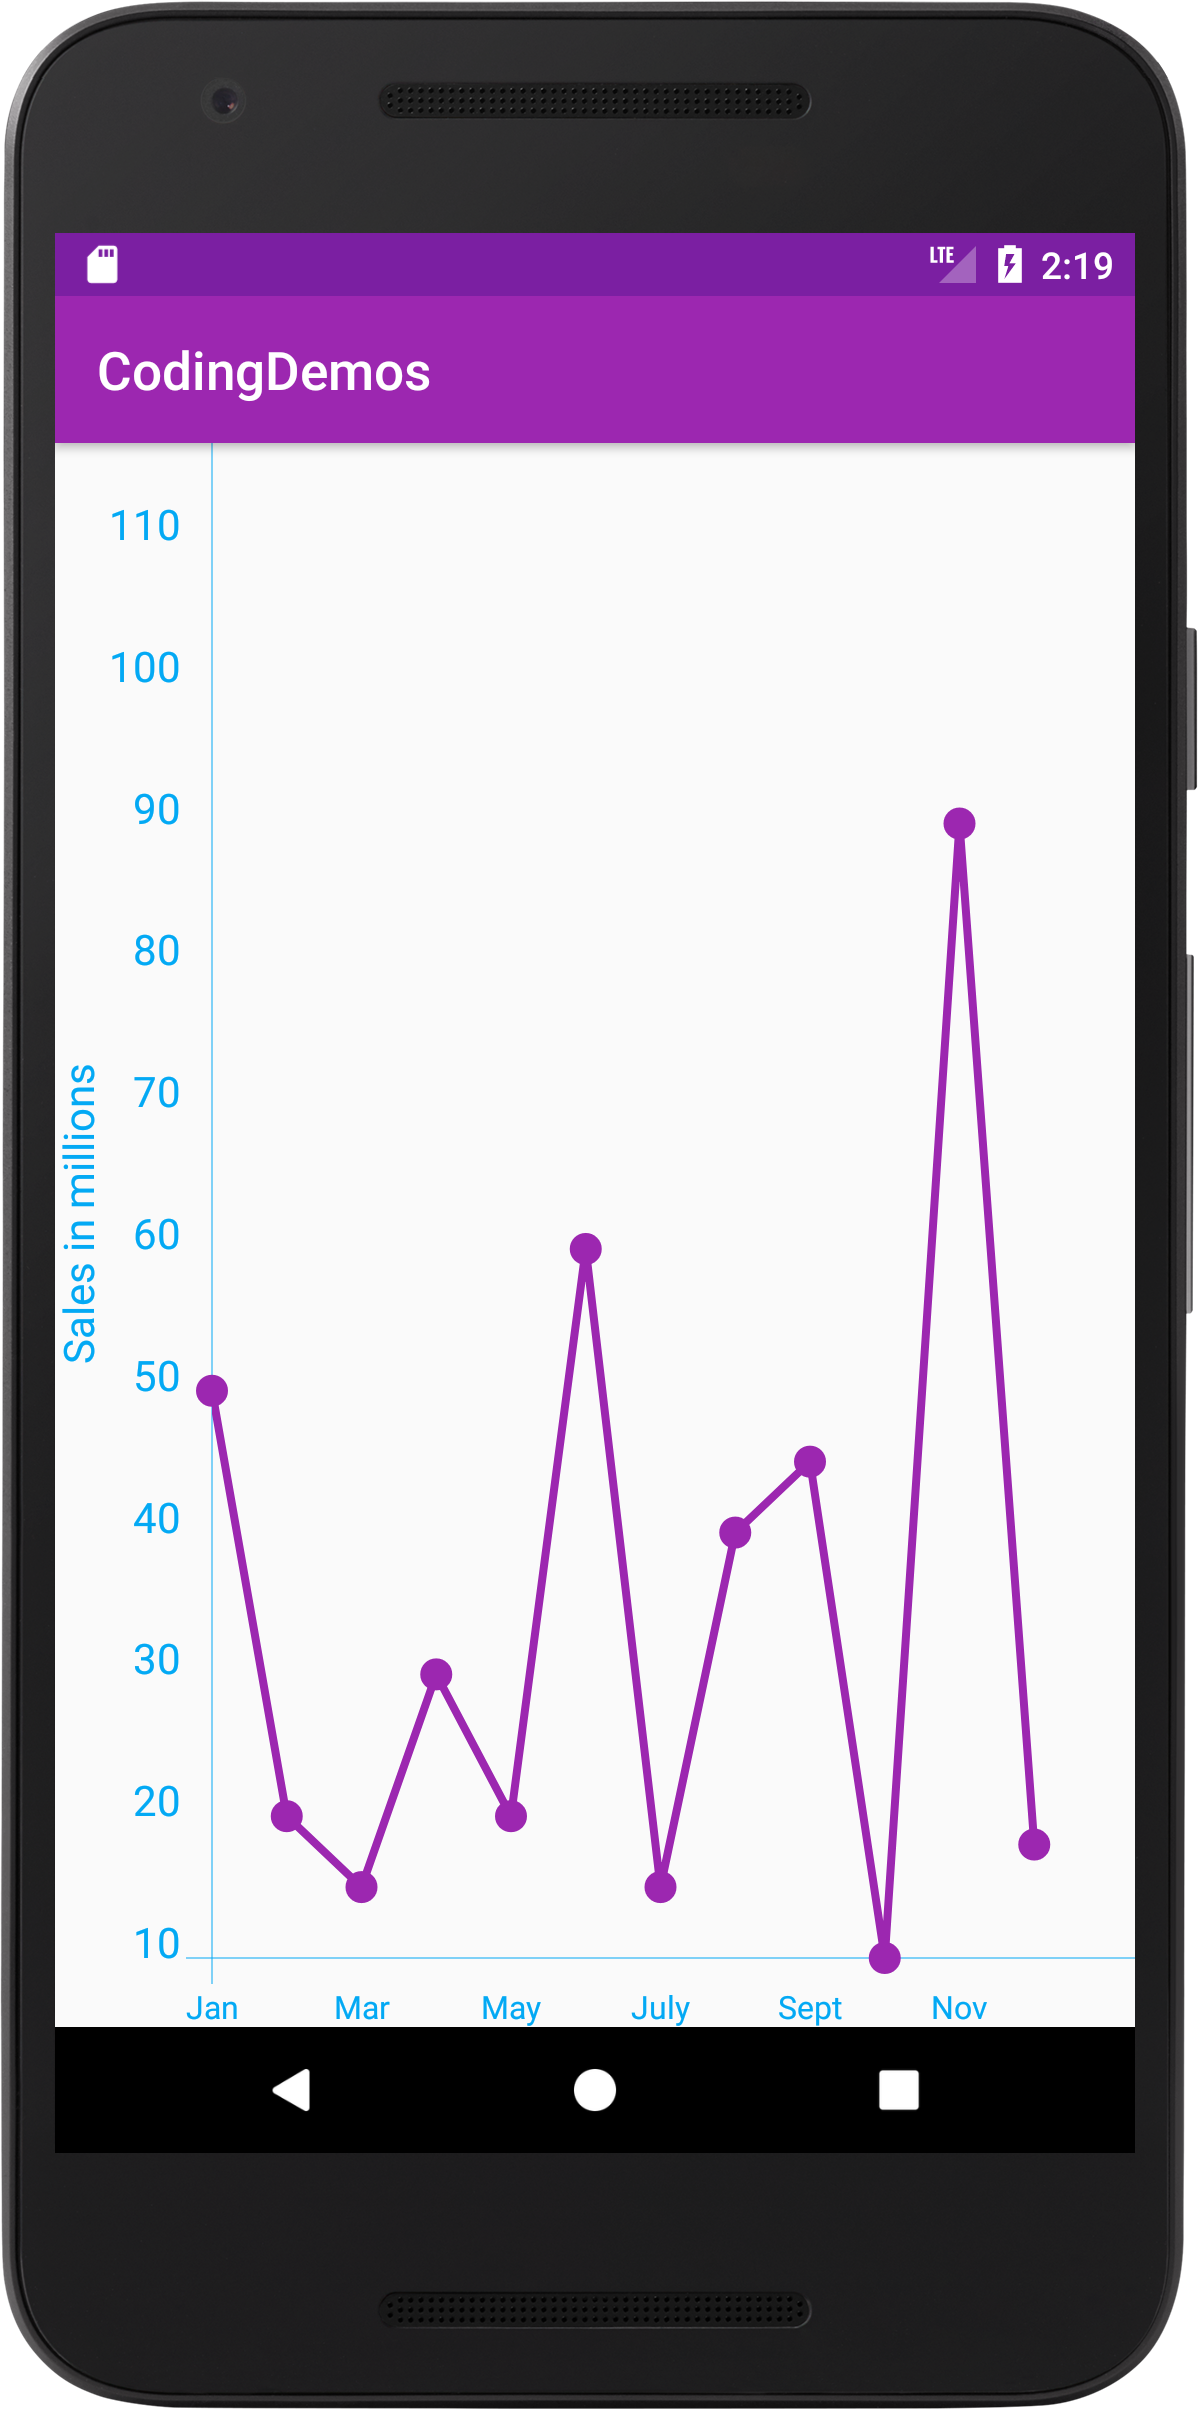 Android Line Chart - How to Draw Line Chart in Android